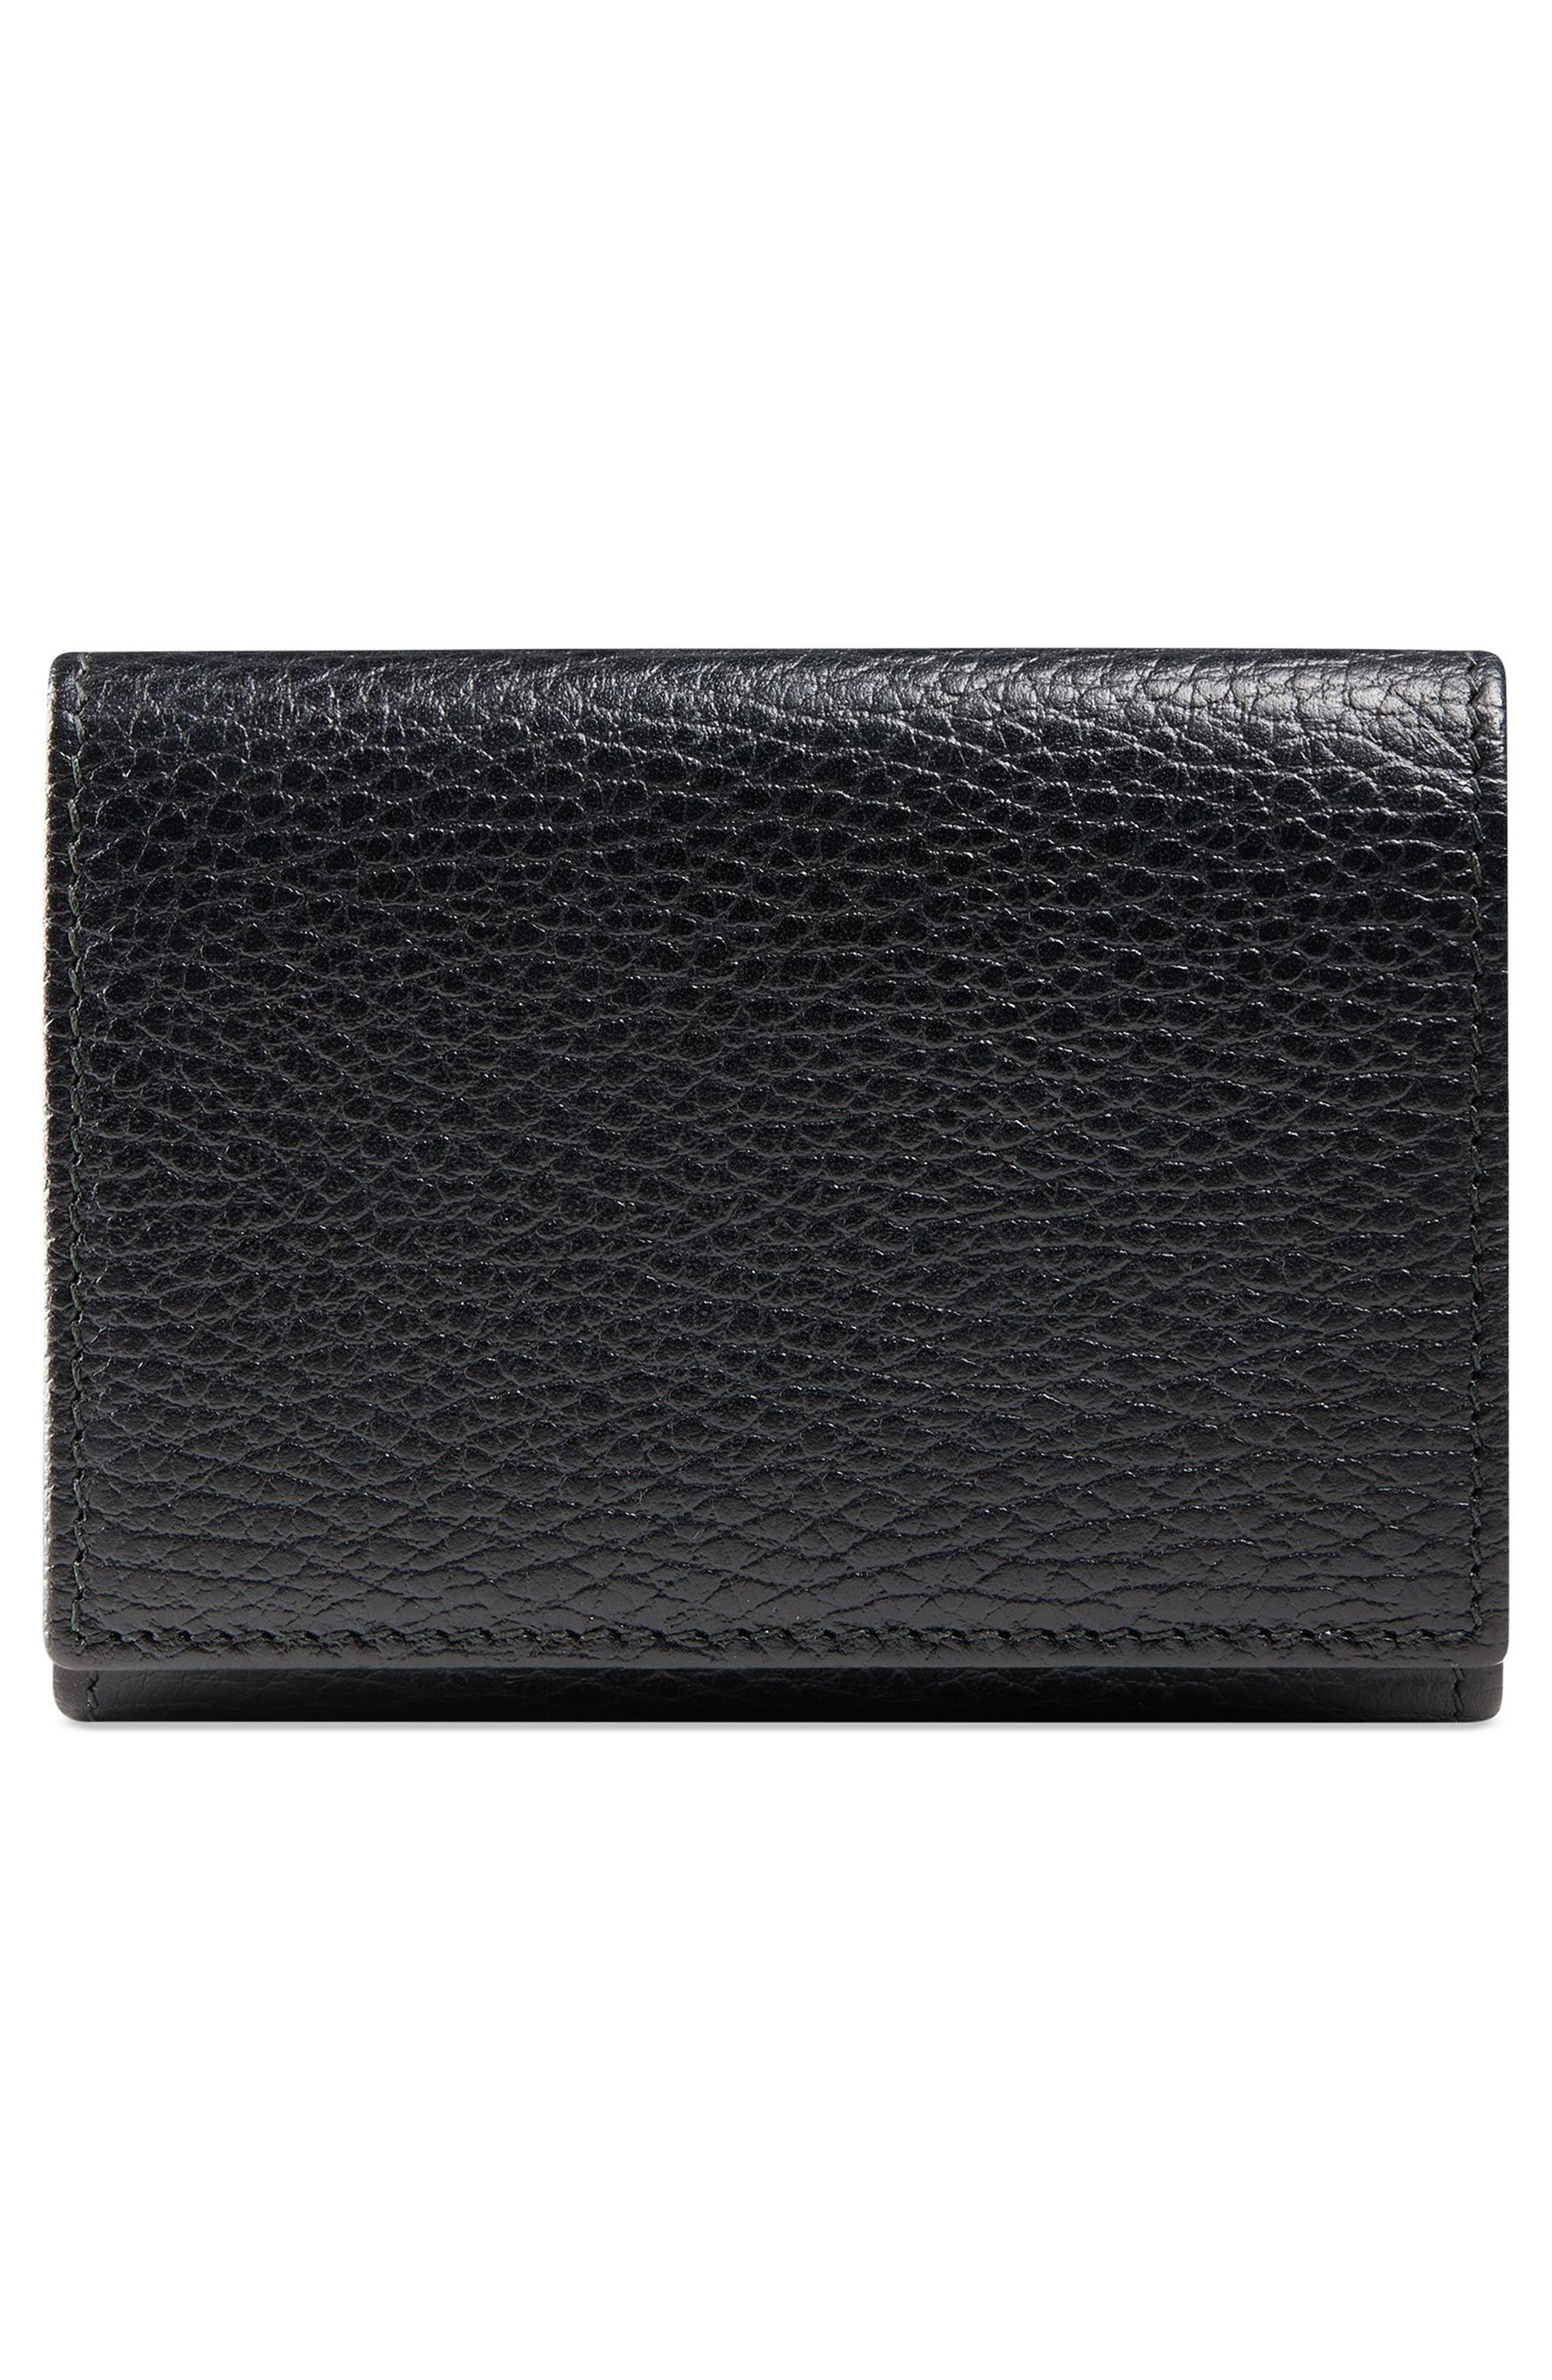 Petite Marmont Leather French Wallet,                             Alternate thumbnail 4, color,                             NERO